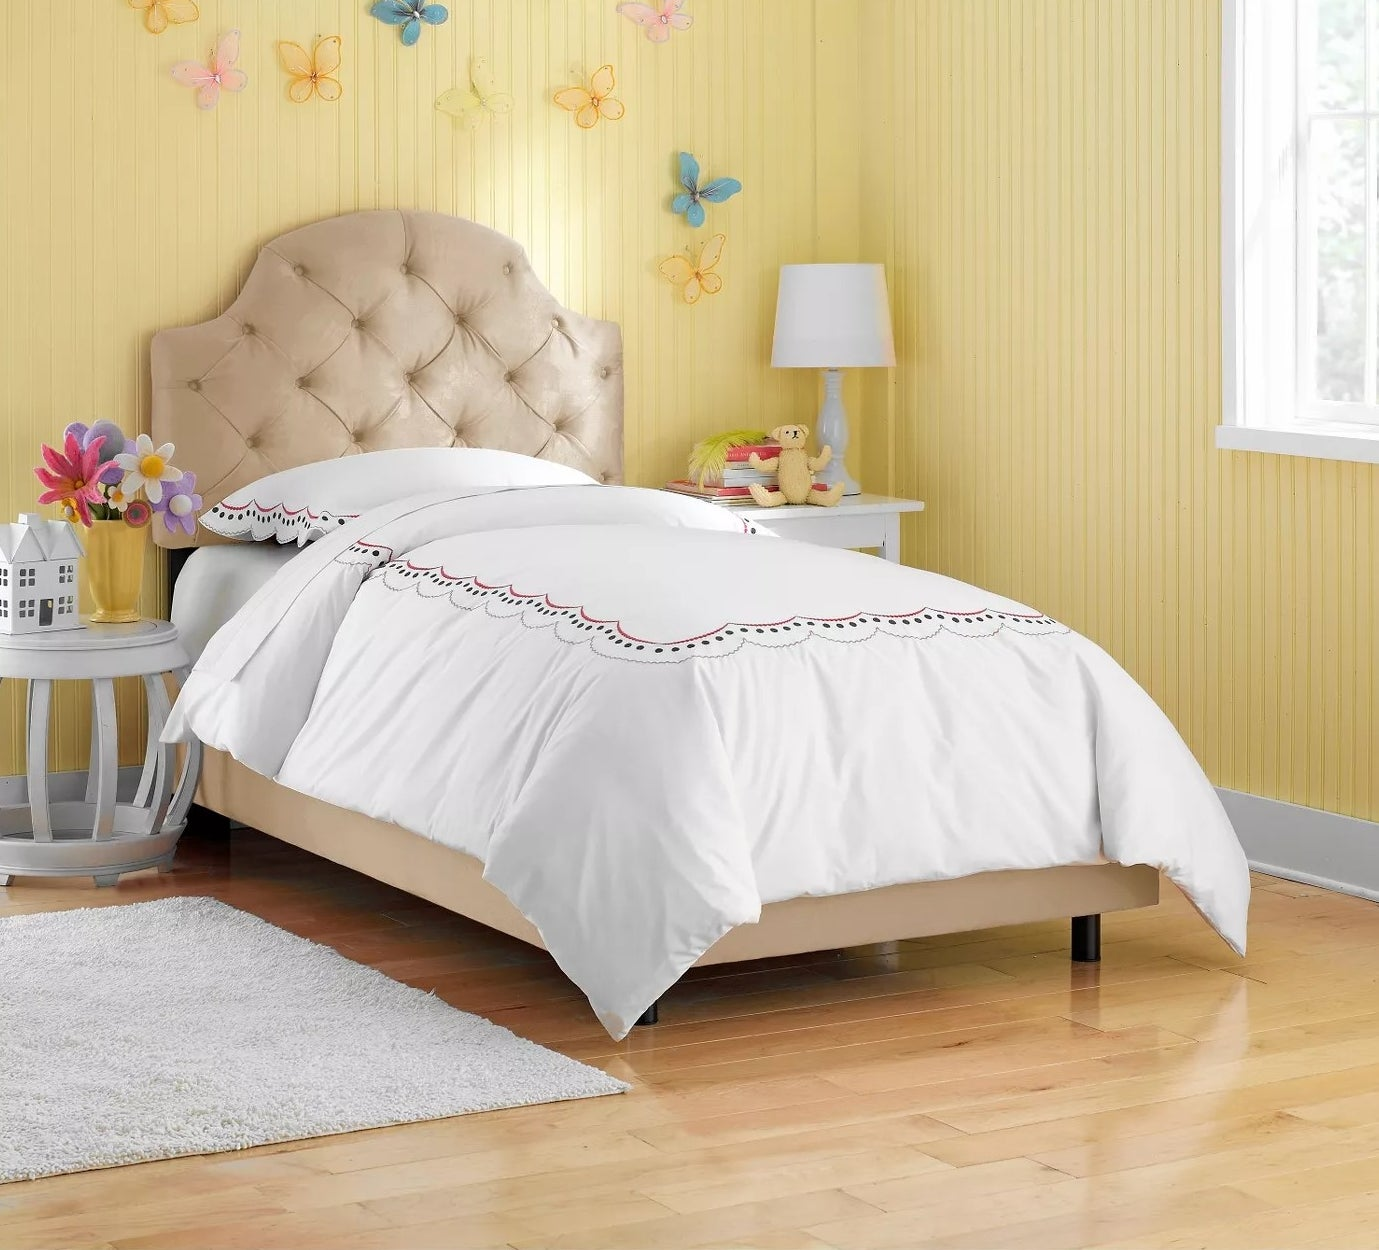 The tan twin bed in a child's room